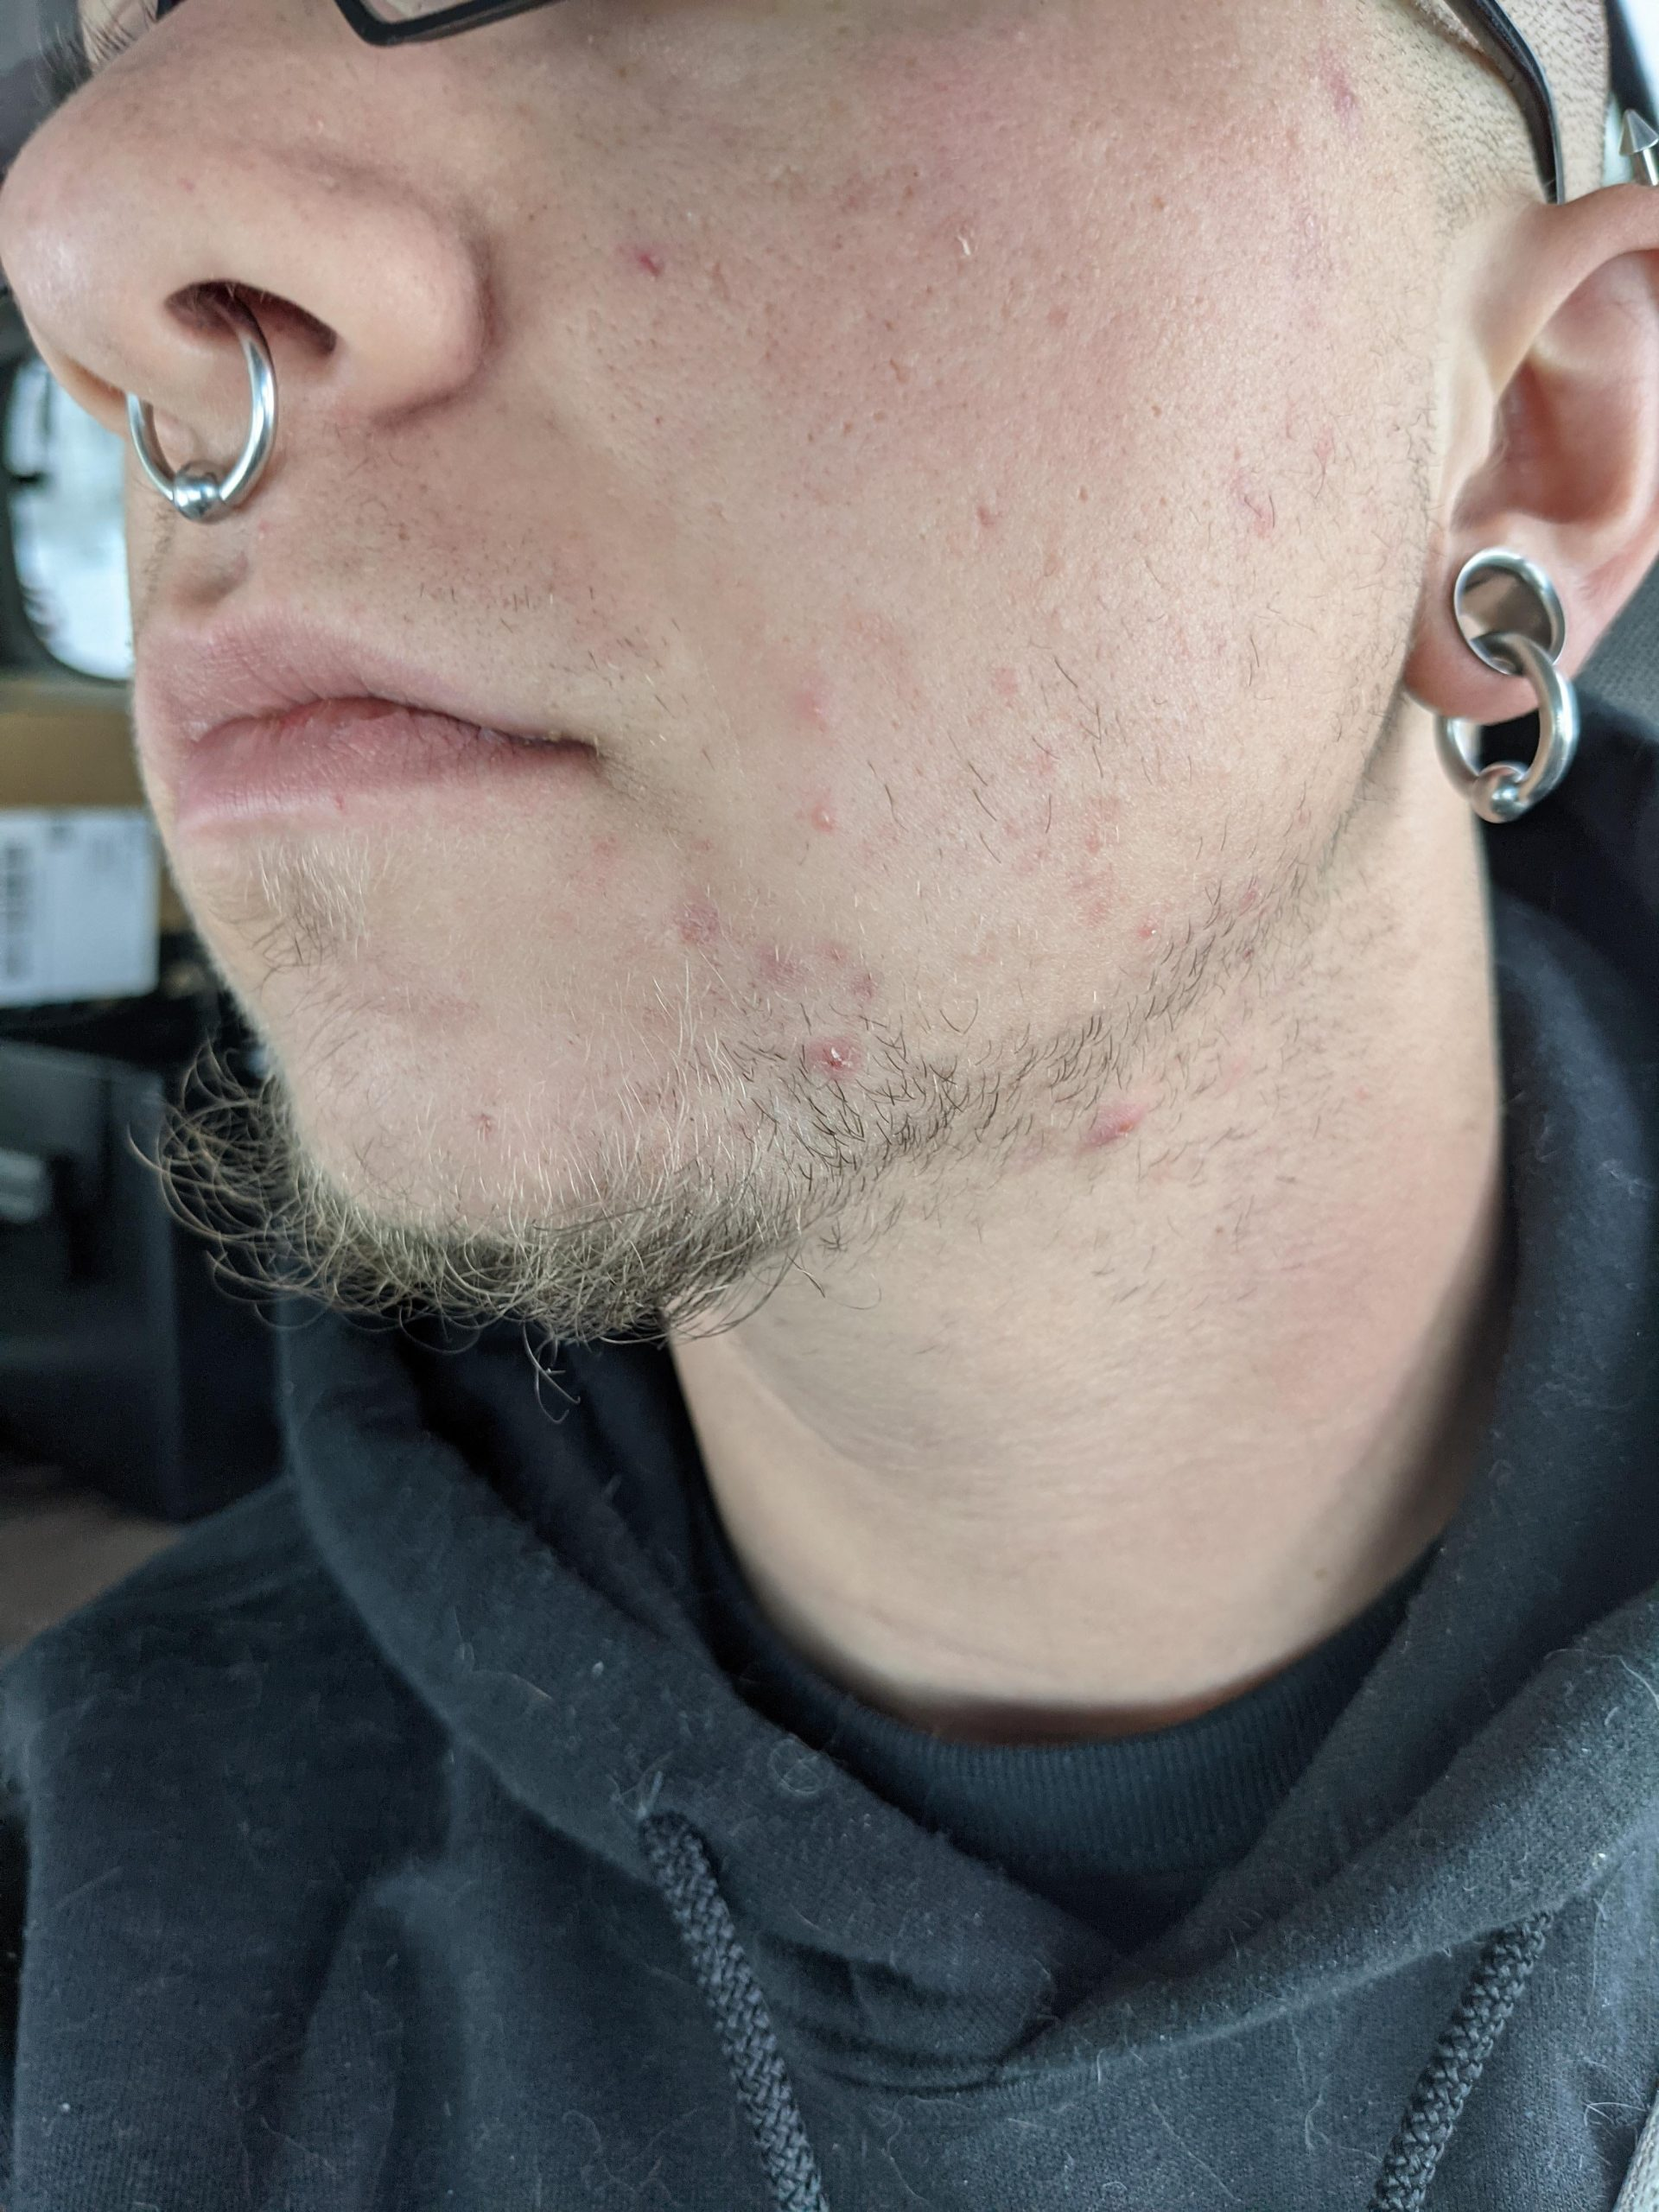 [skin concerns] Help with ingrown hairs! (Details/current routine in comments)